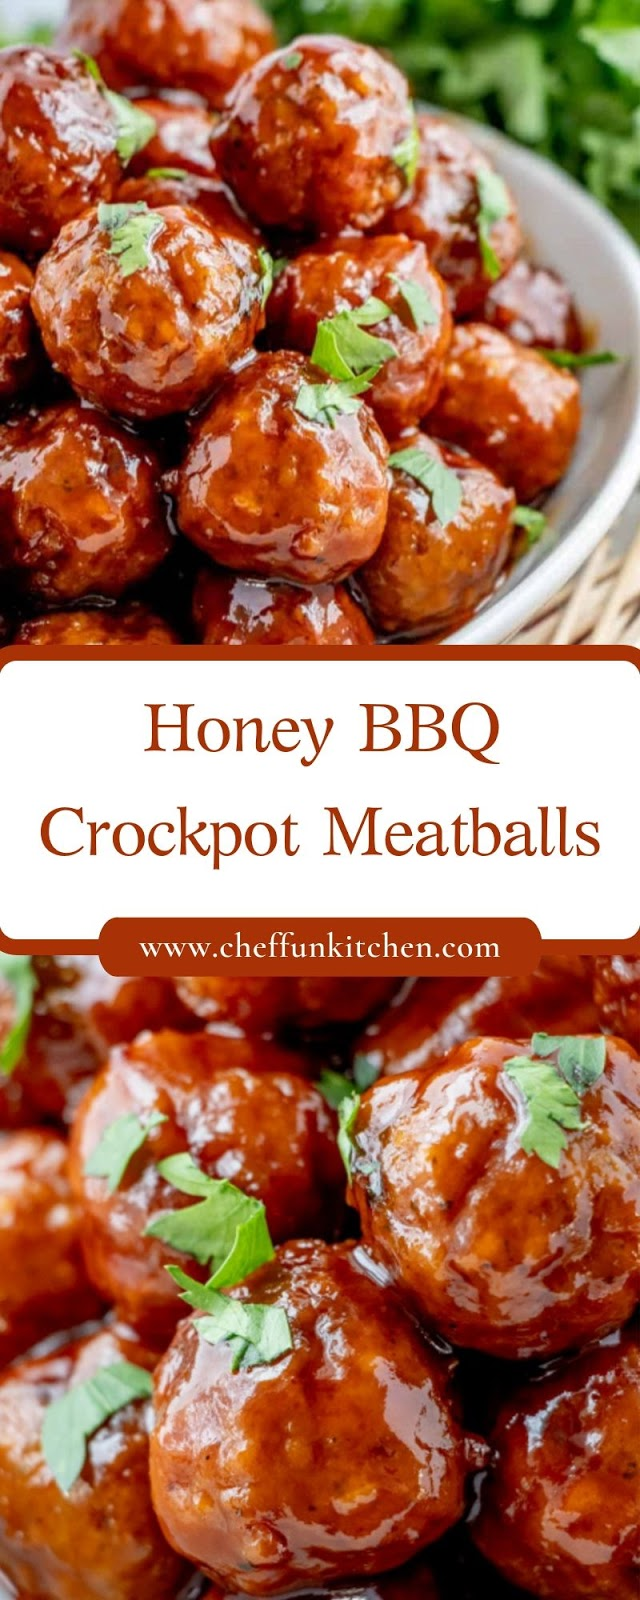 Honey BBQ Crockpot Meatballs